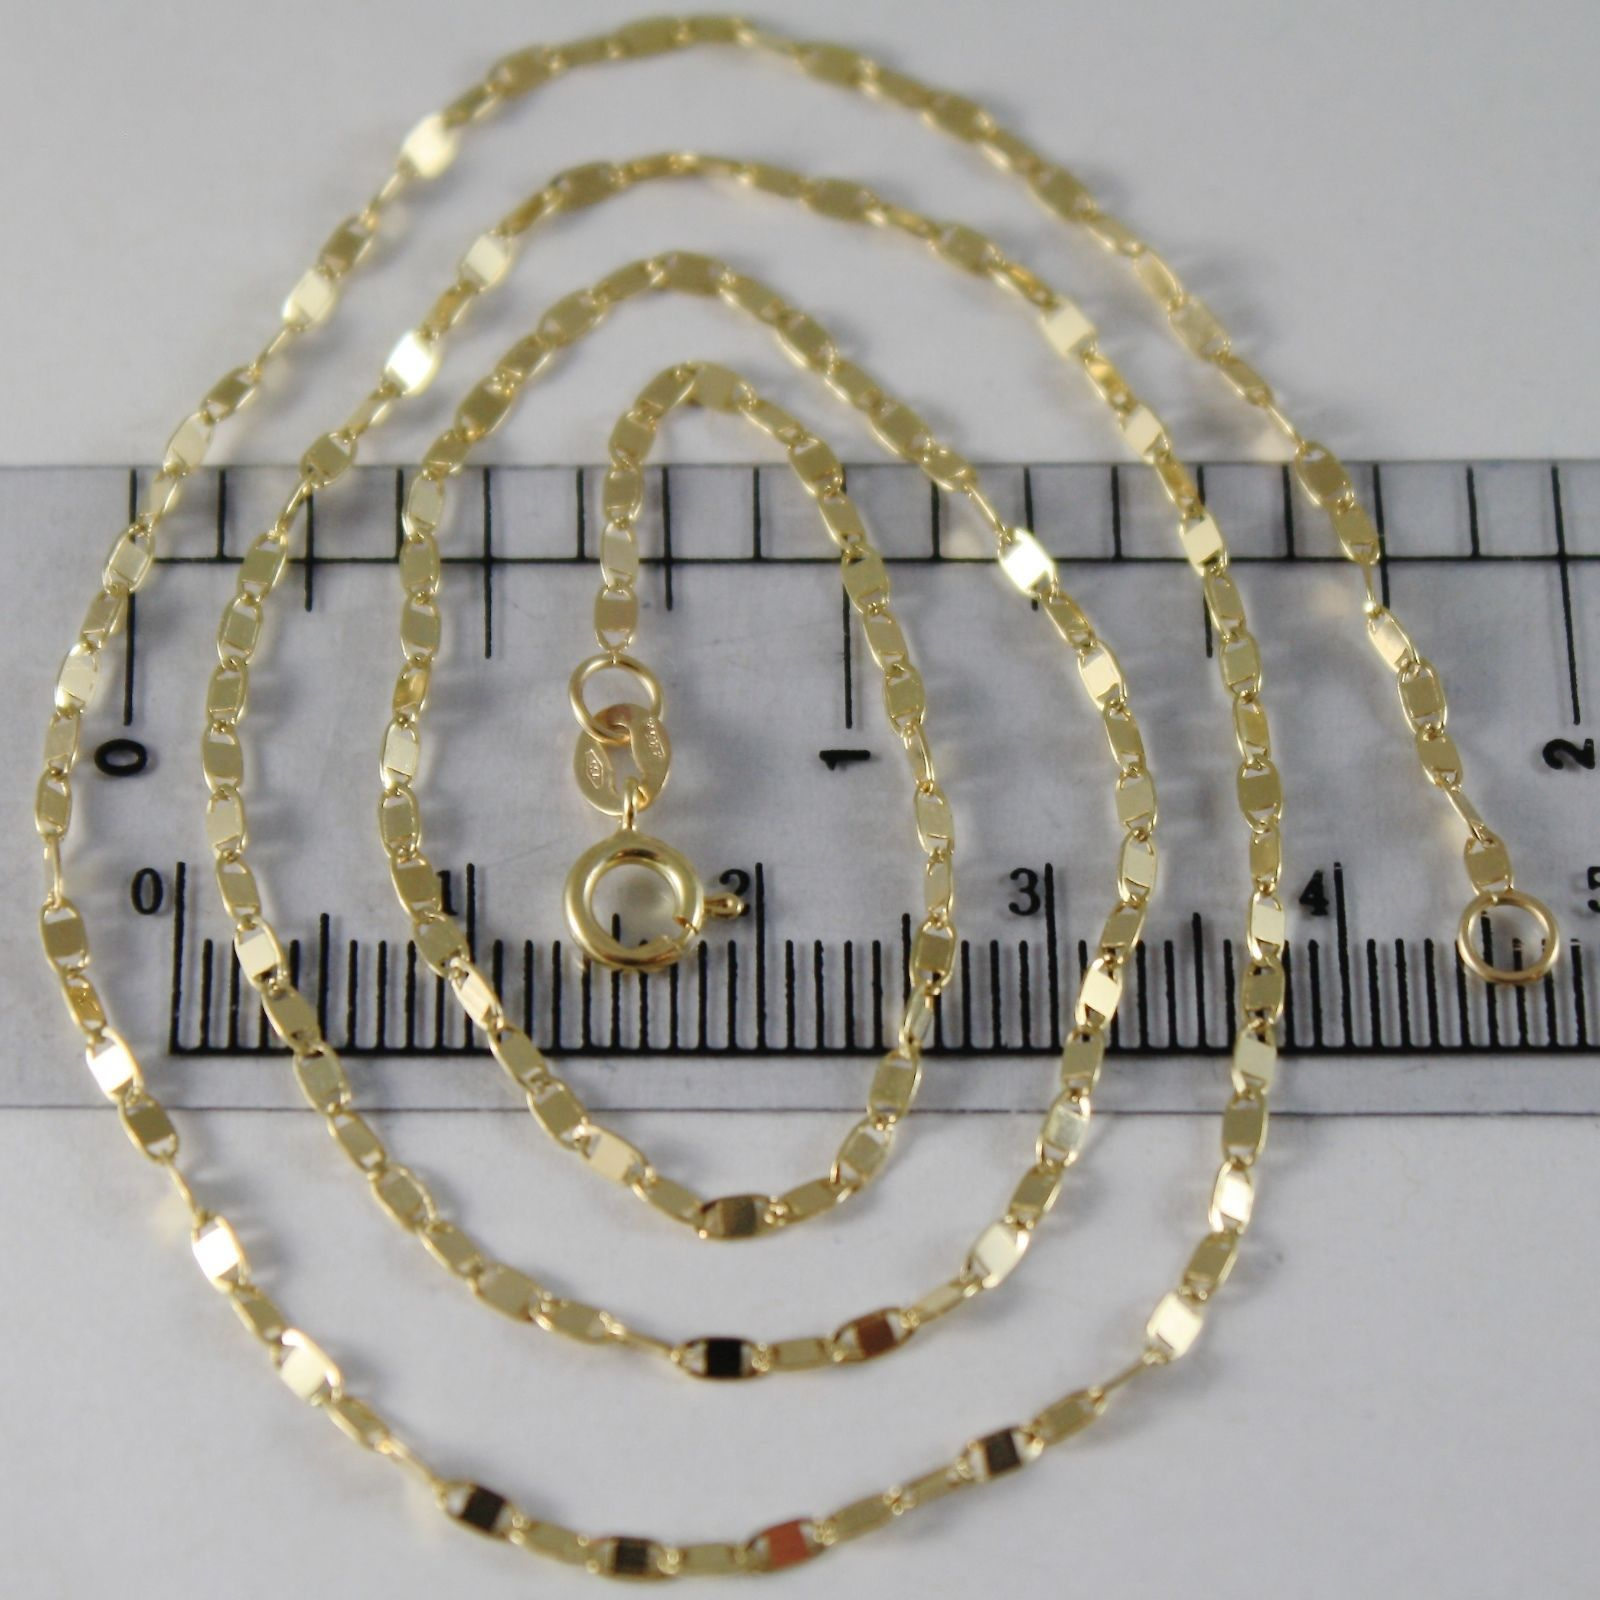 SOLID 18K YELLOW GOLD CHAIN 19.70 INCHES, MINI SQUARE LINK 1.8 MM, MADE IN ITALY